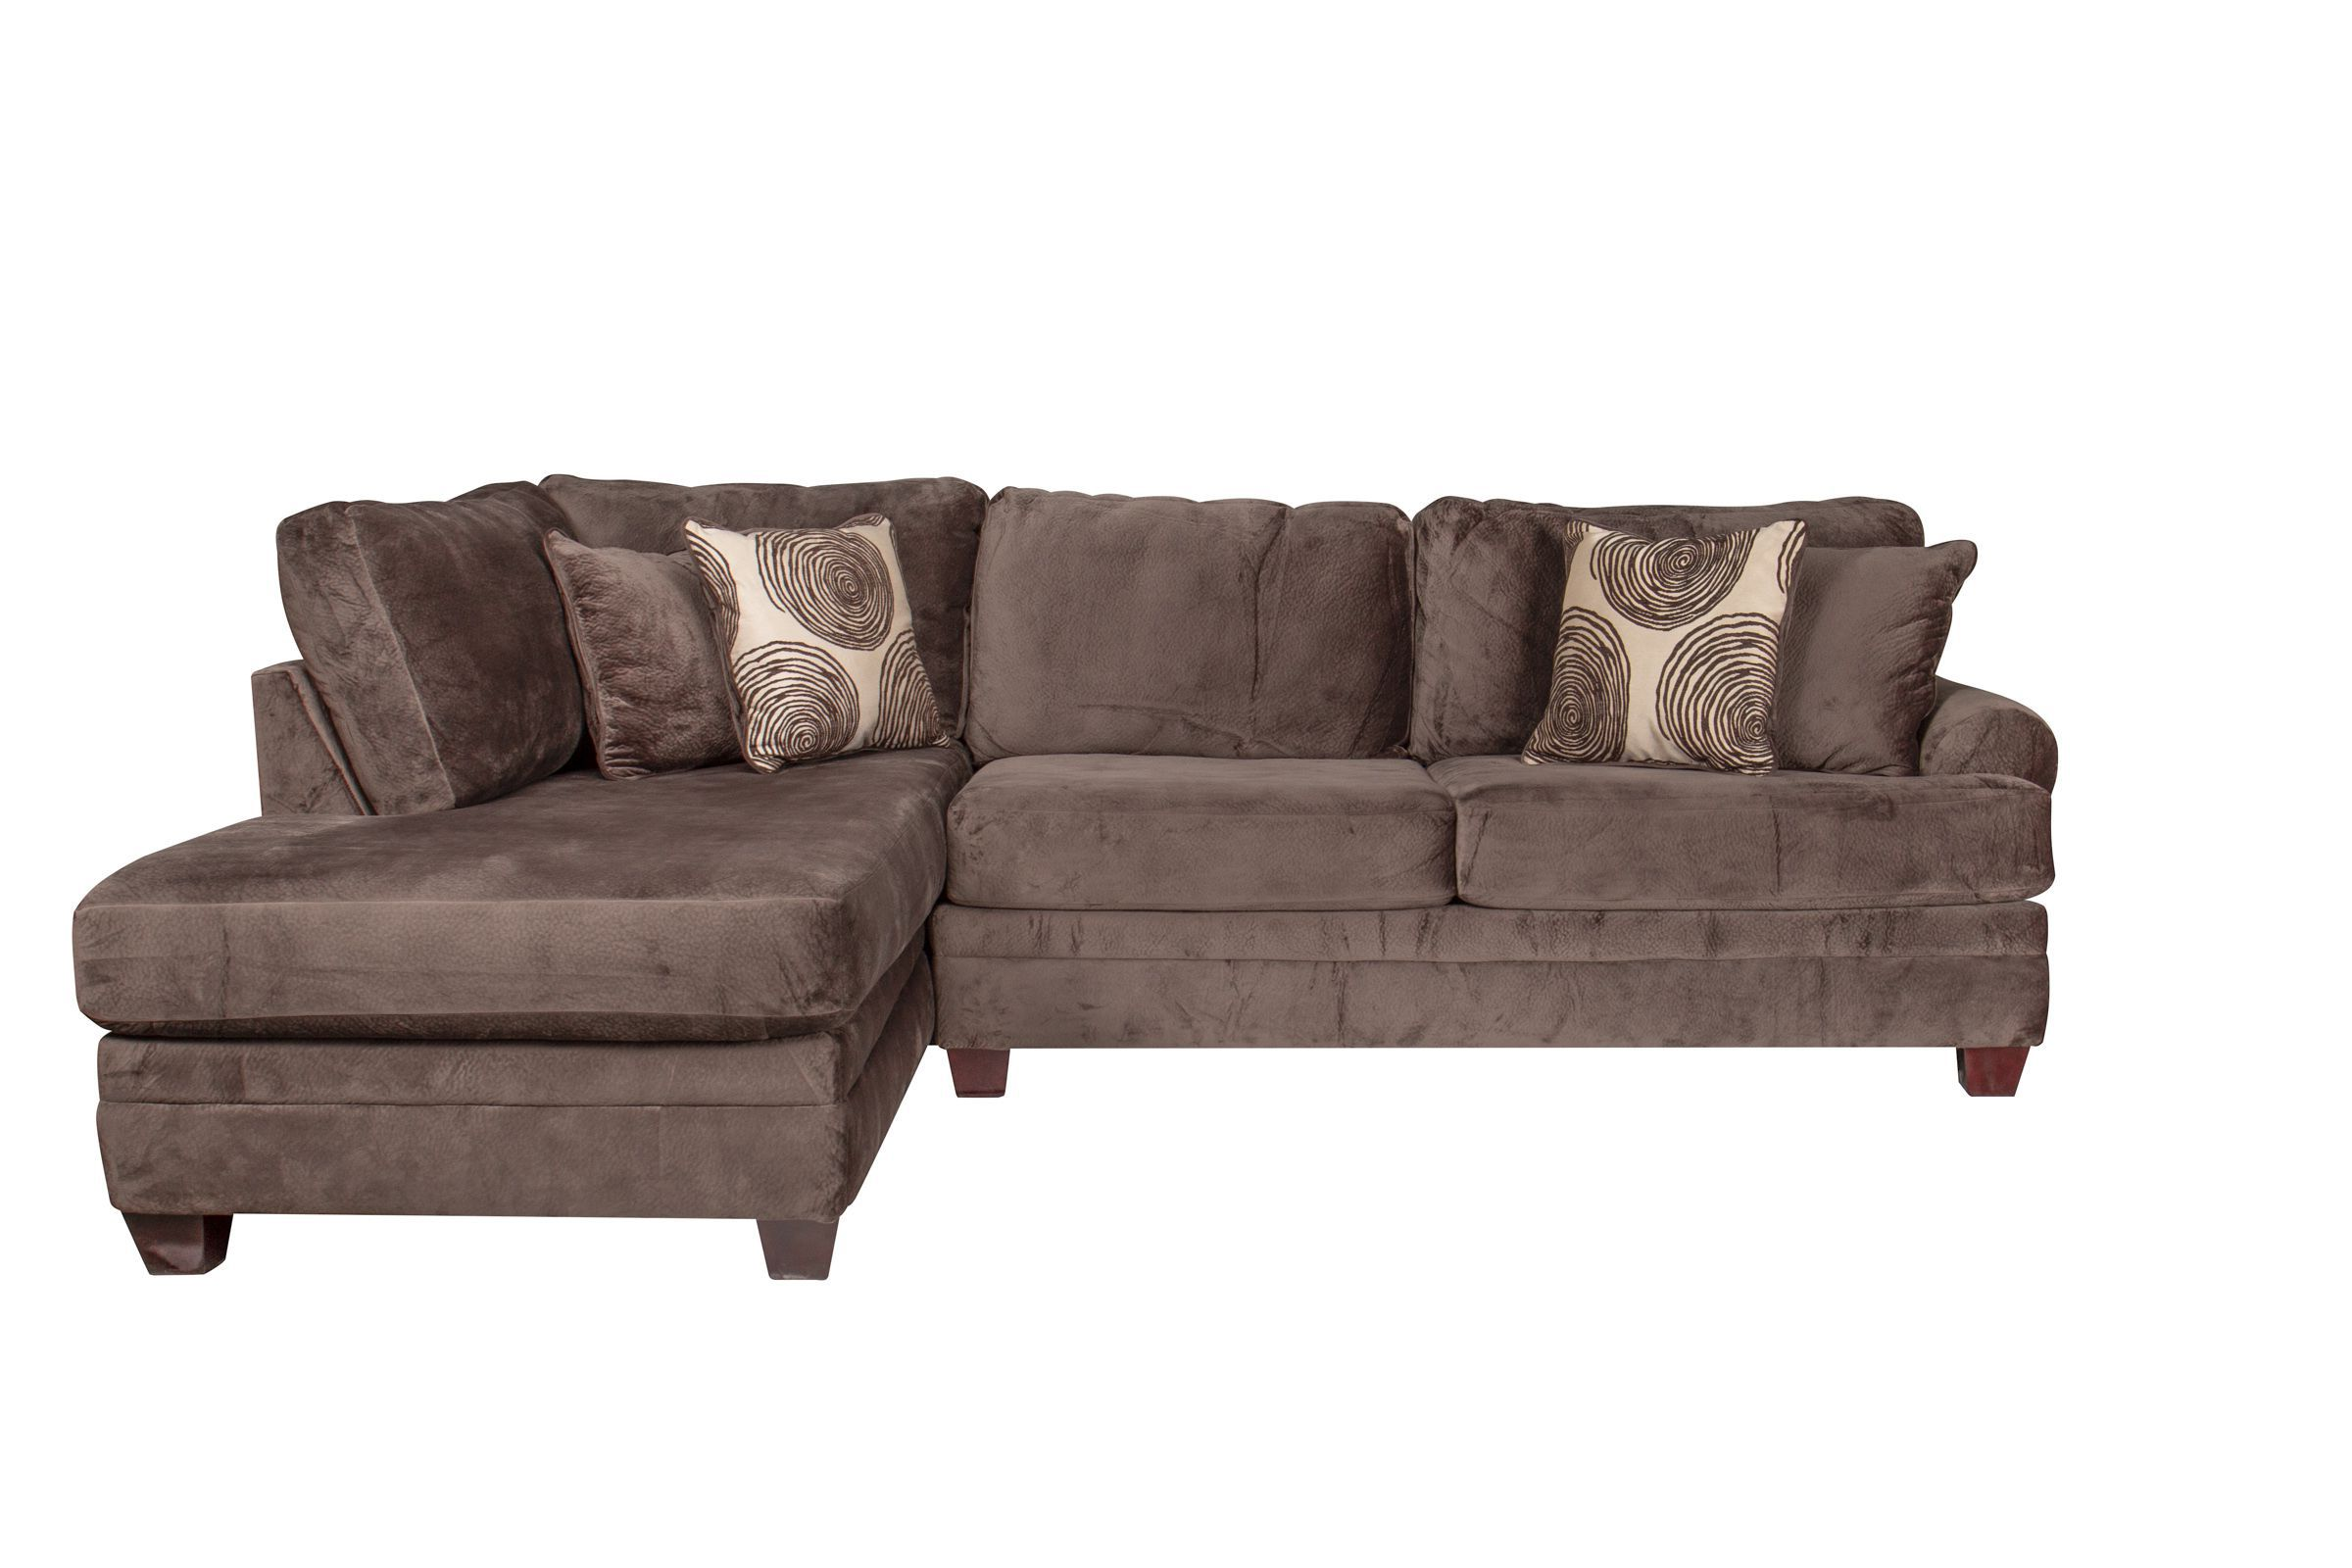 channing microfiber sectional with chaise on the left